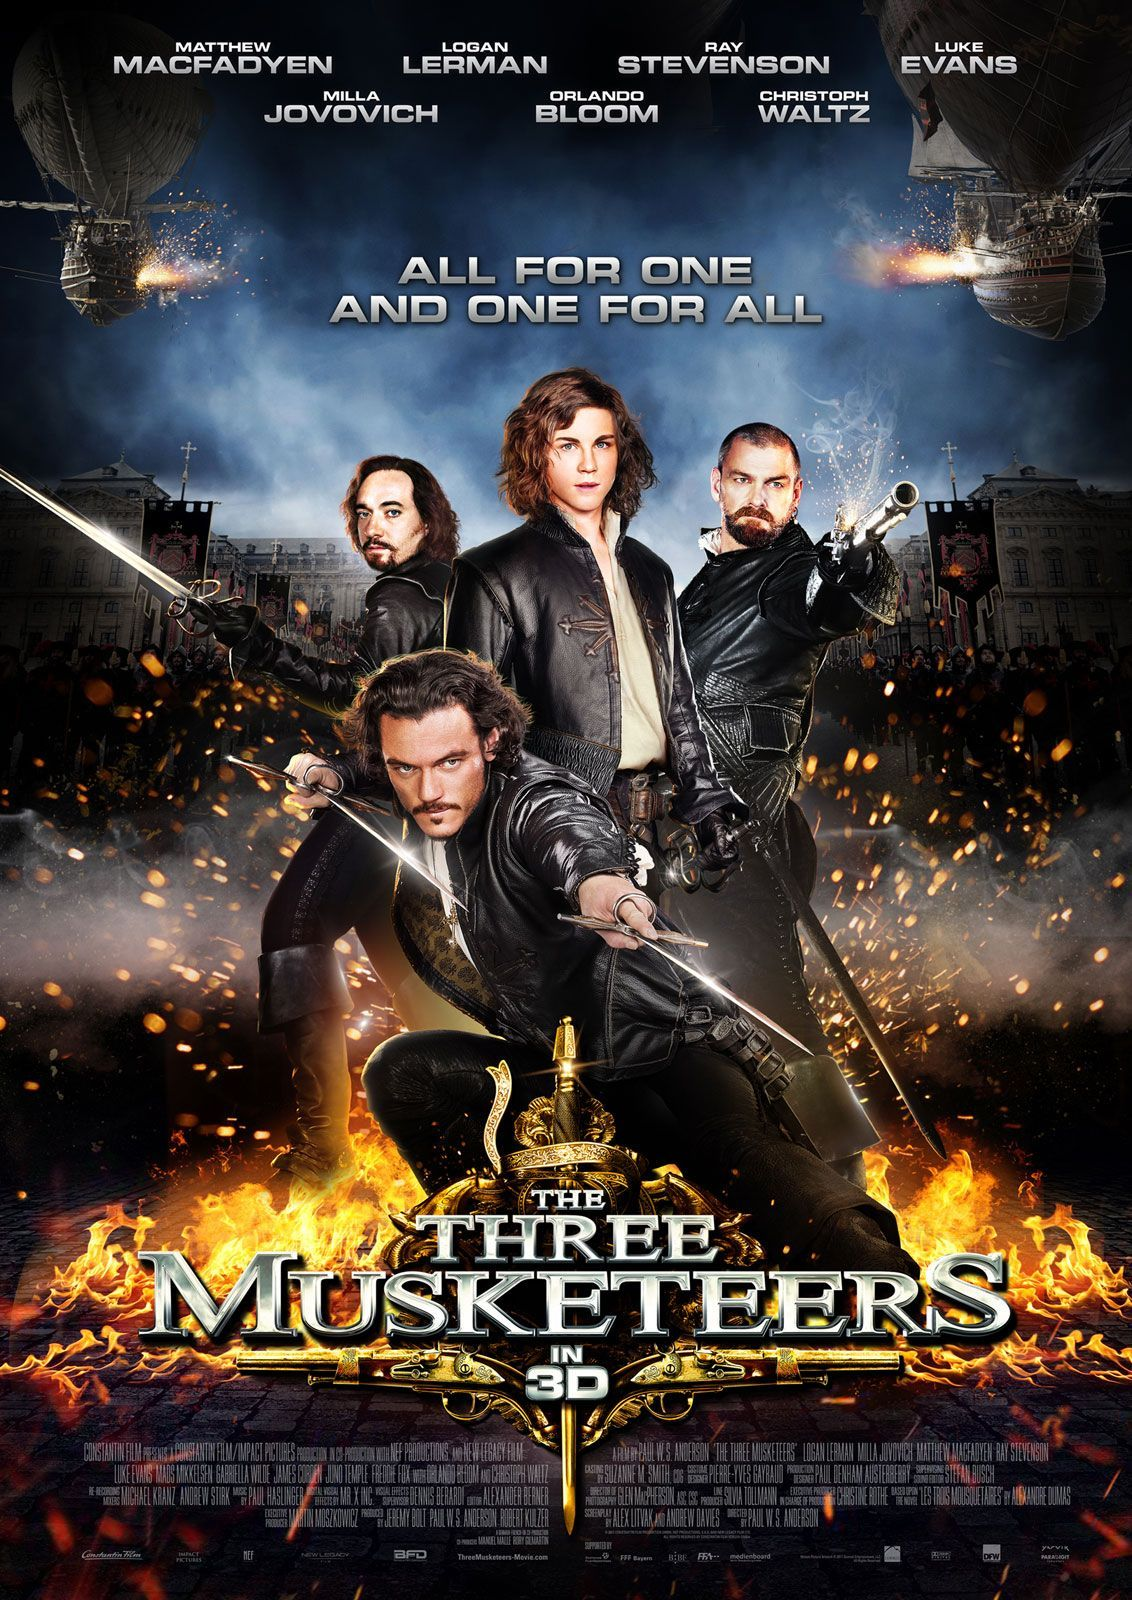 The Three Musketeers | musketeer in 2019 | The three musketeers, The